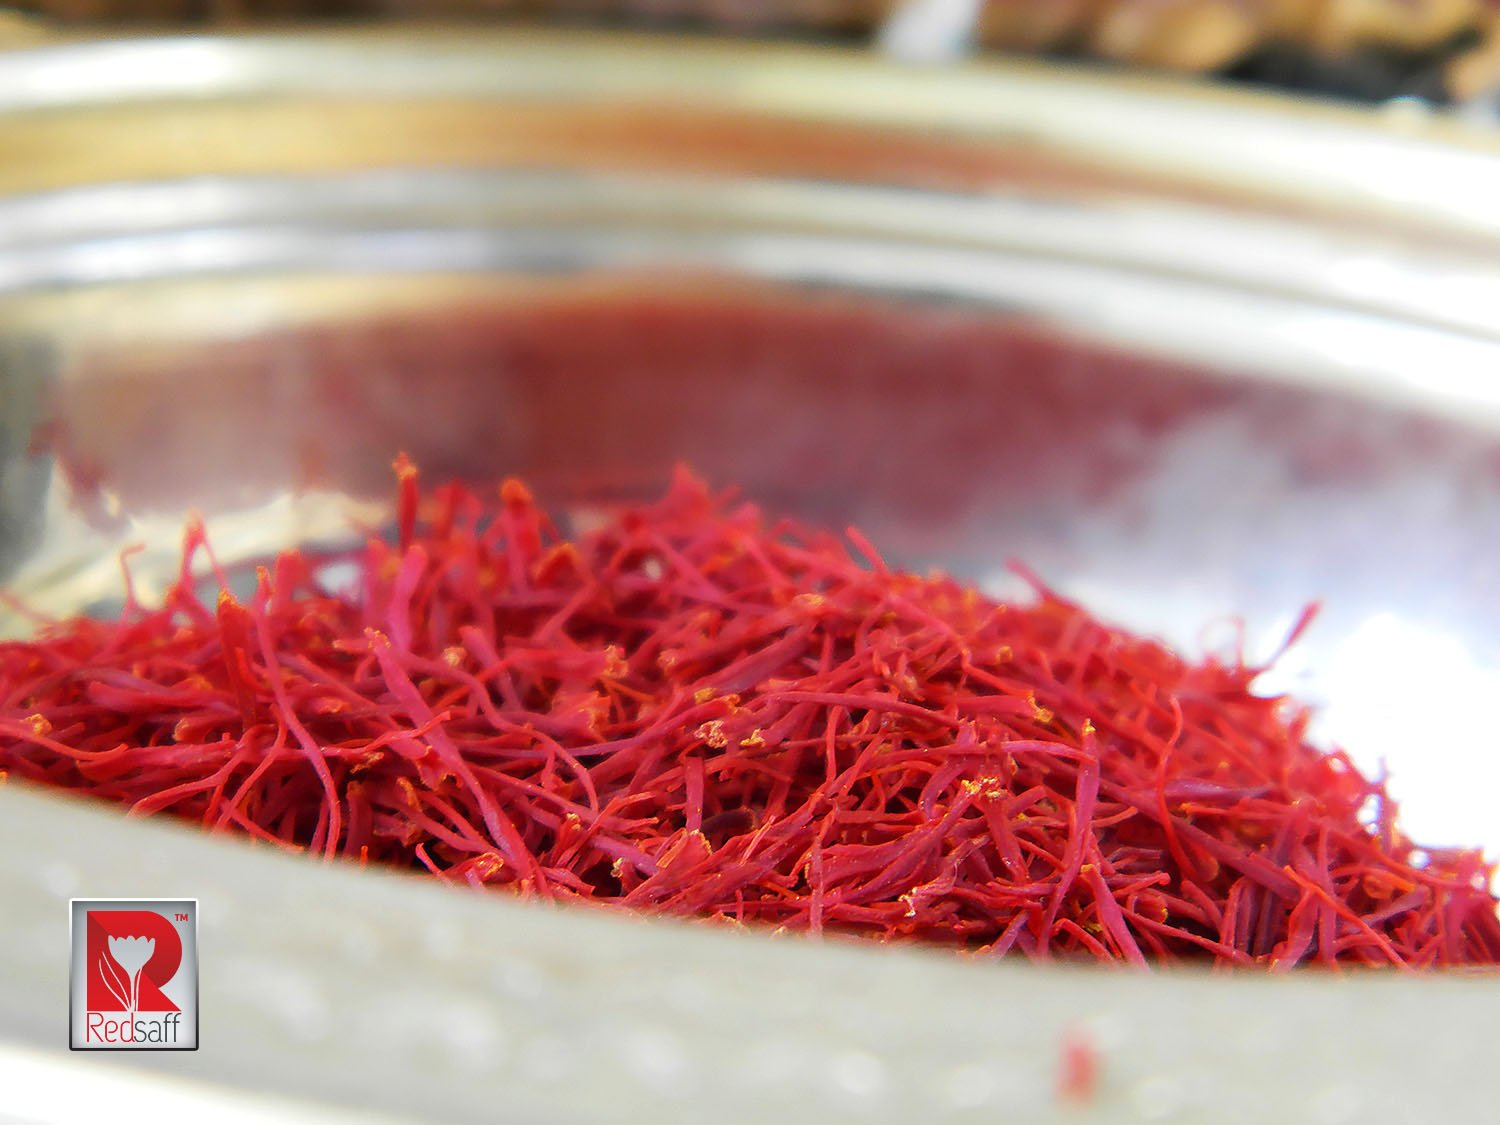 Redsaff Afghan Saffron Threads (Fresh Harvest) Professional Chef Grade Quality - Potent Saffron Spice For Cooking (3 grams) by Redsaff Saffron (Image #3)